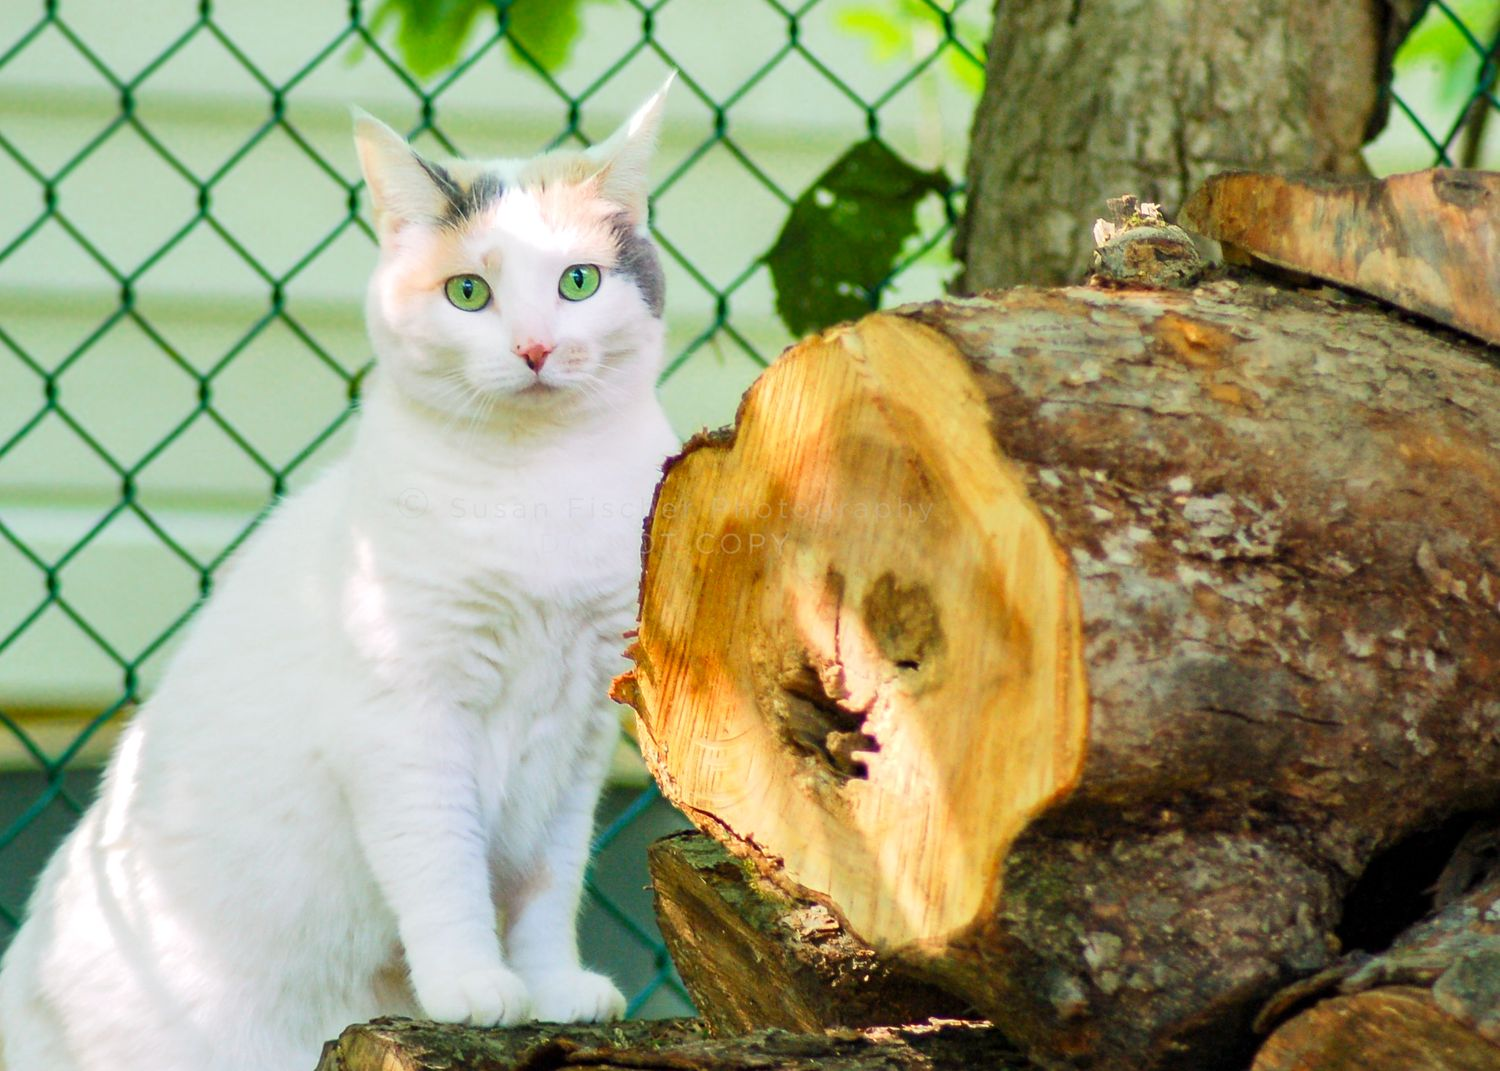 white cat with green eyes with front paws on a log